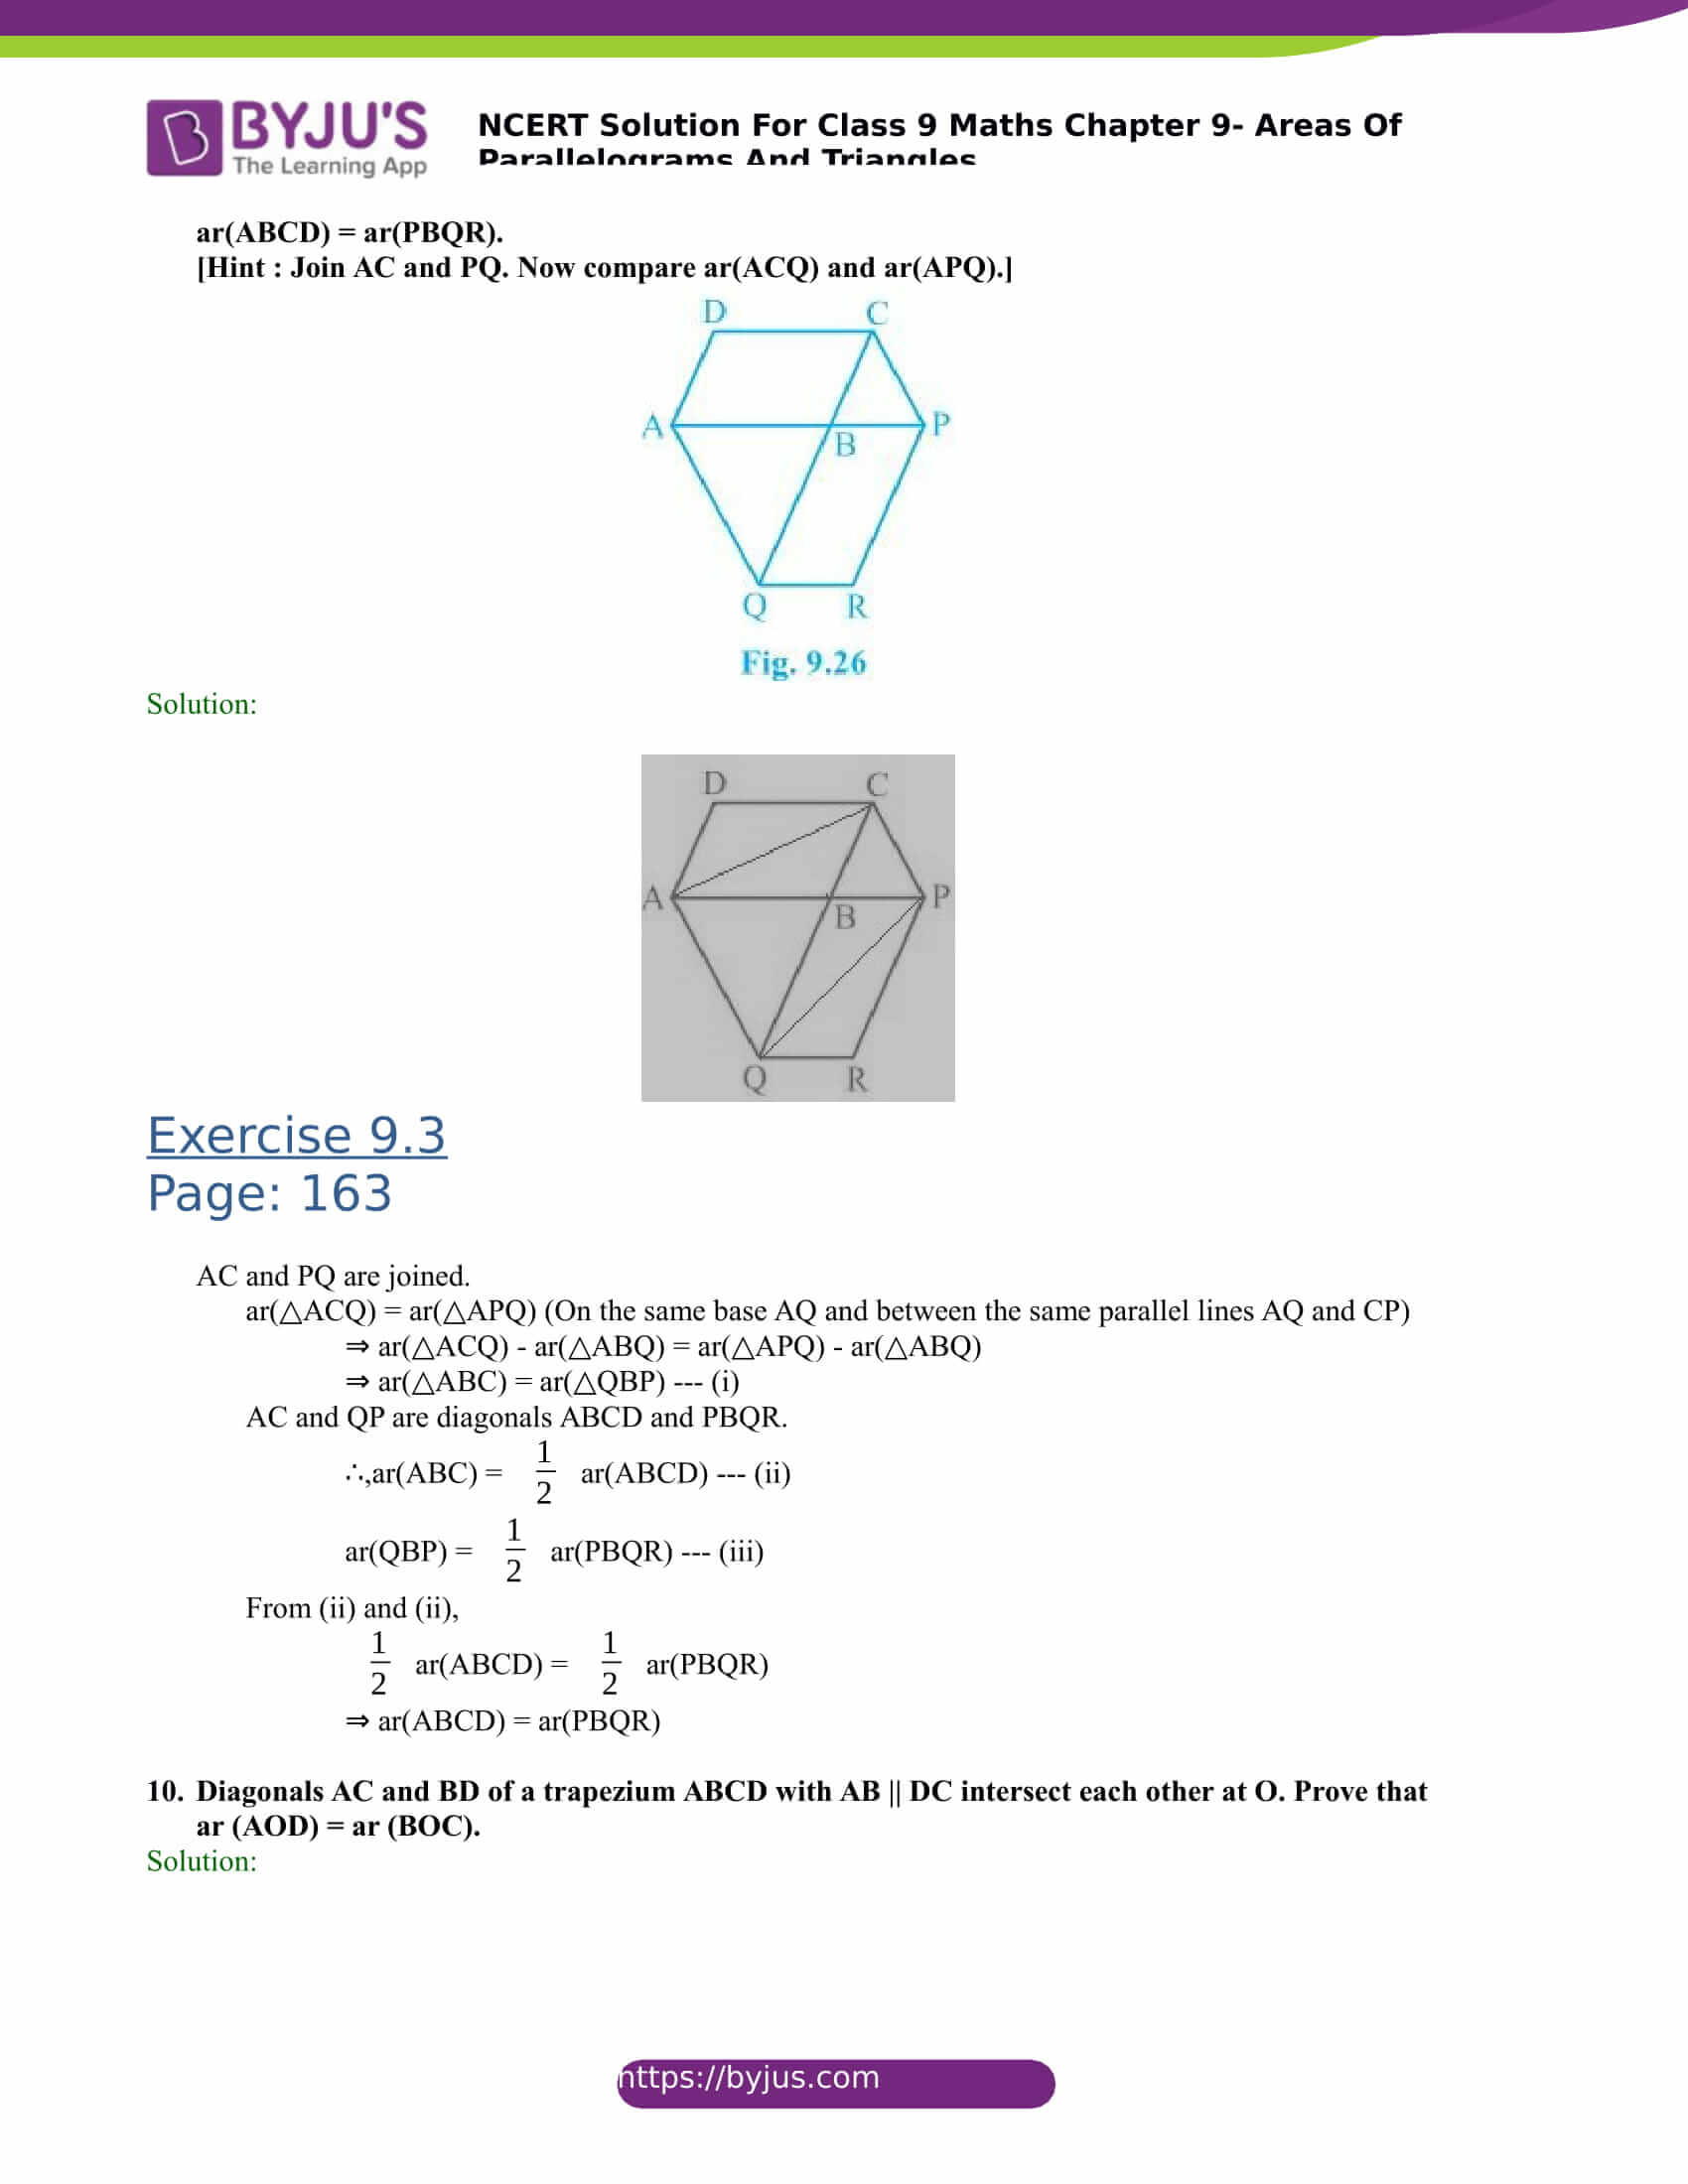 NCERT Solutions for class 9 Maths Chapter 9 Areas of parallelograms and triangles Part 14